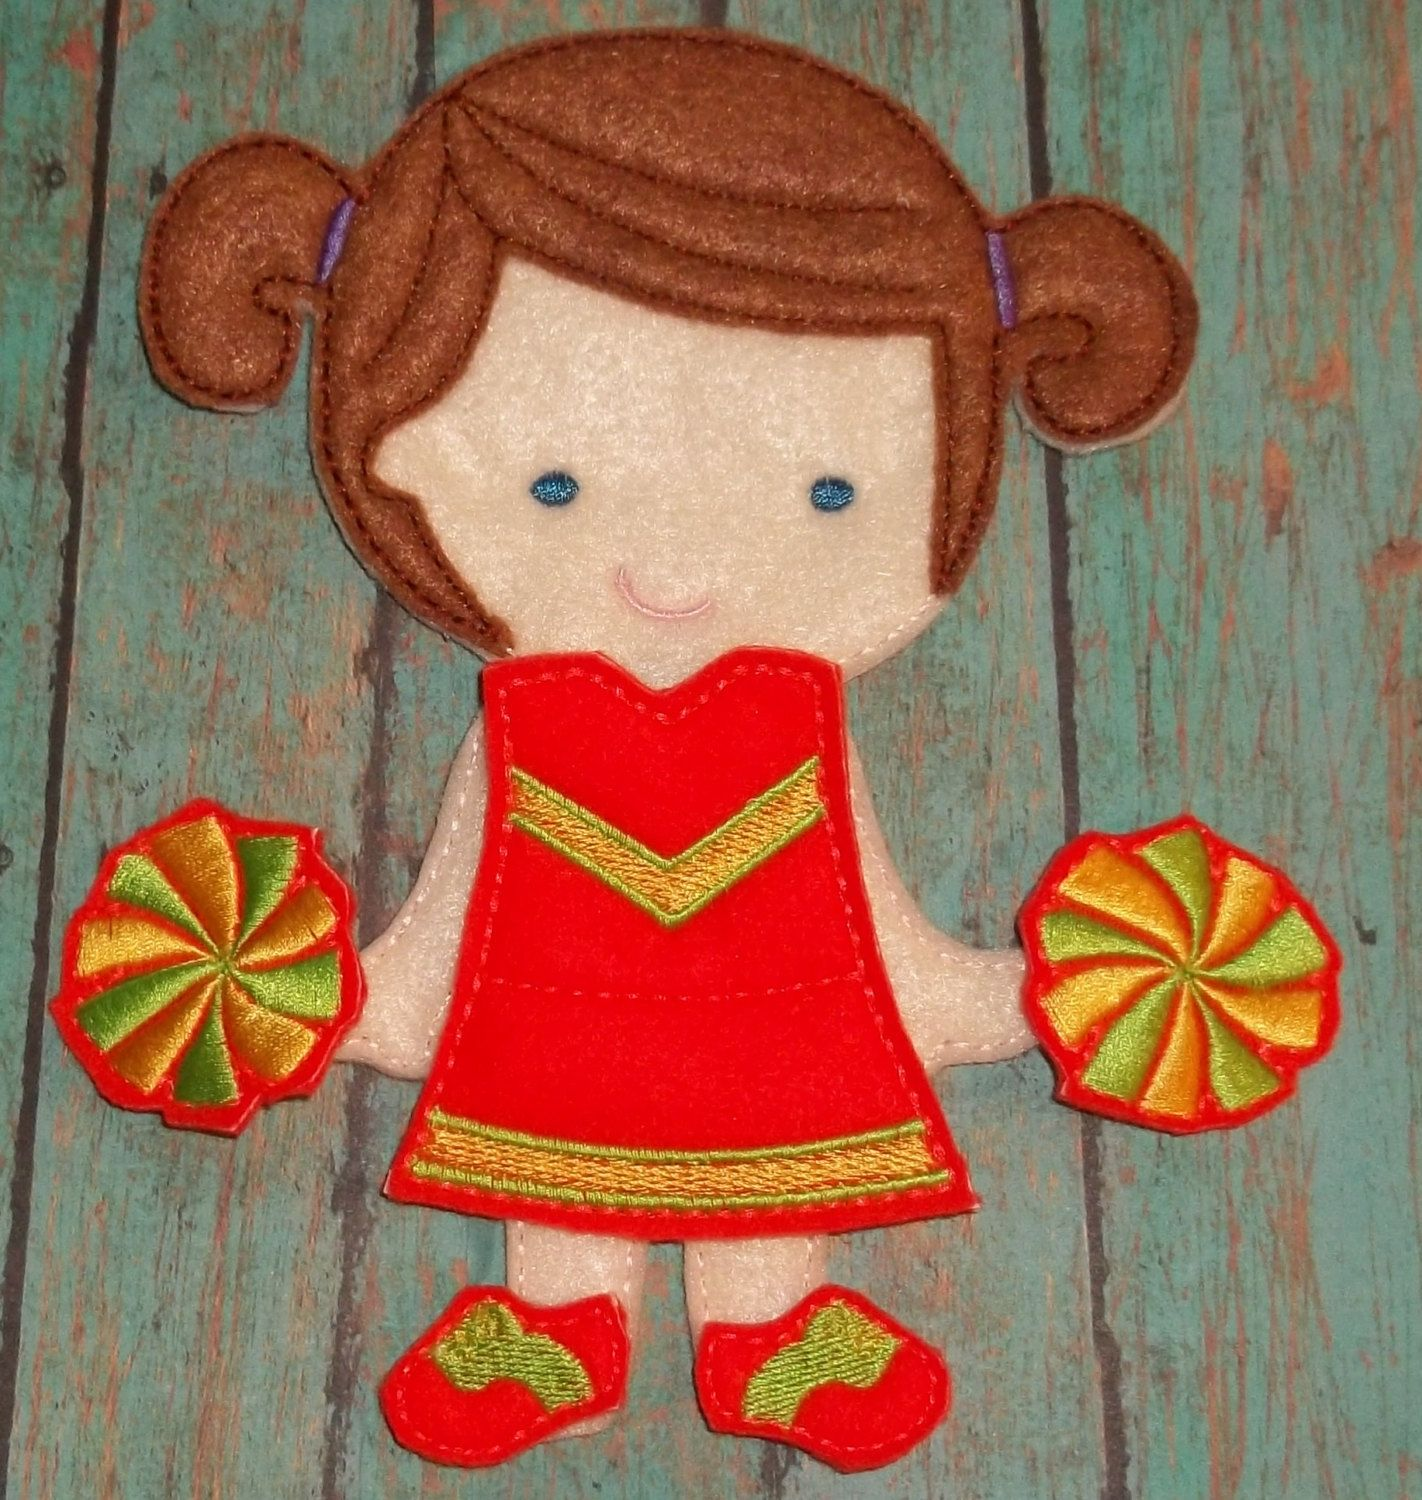 """Cheerleader Dress Up Outfit w pompoms sneakers from my """"Unpaper Felt Dolls Share"""" collection Listing for doll clothes outfit only fits girls by cabincraftycreations on Etsy"""